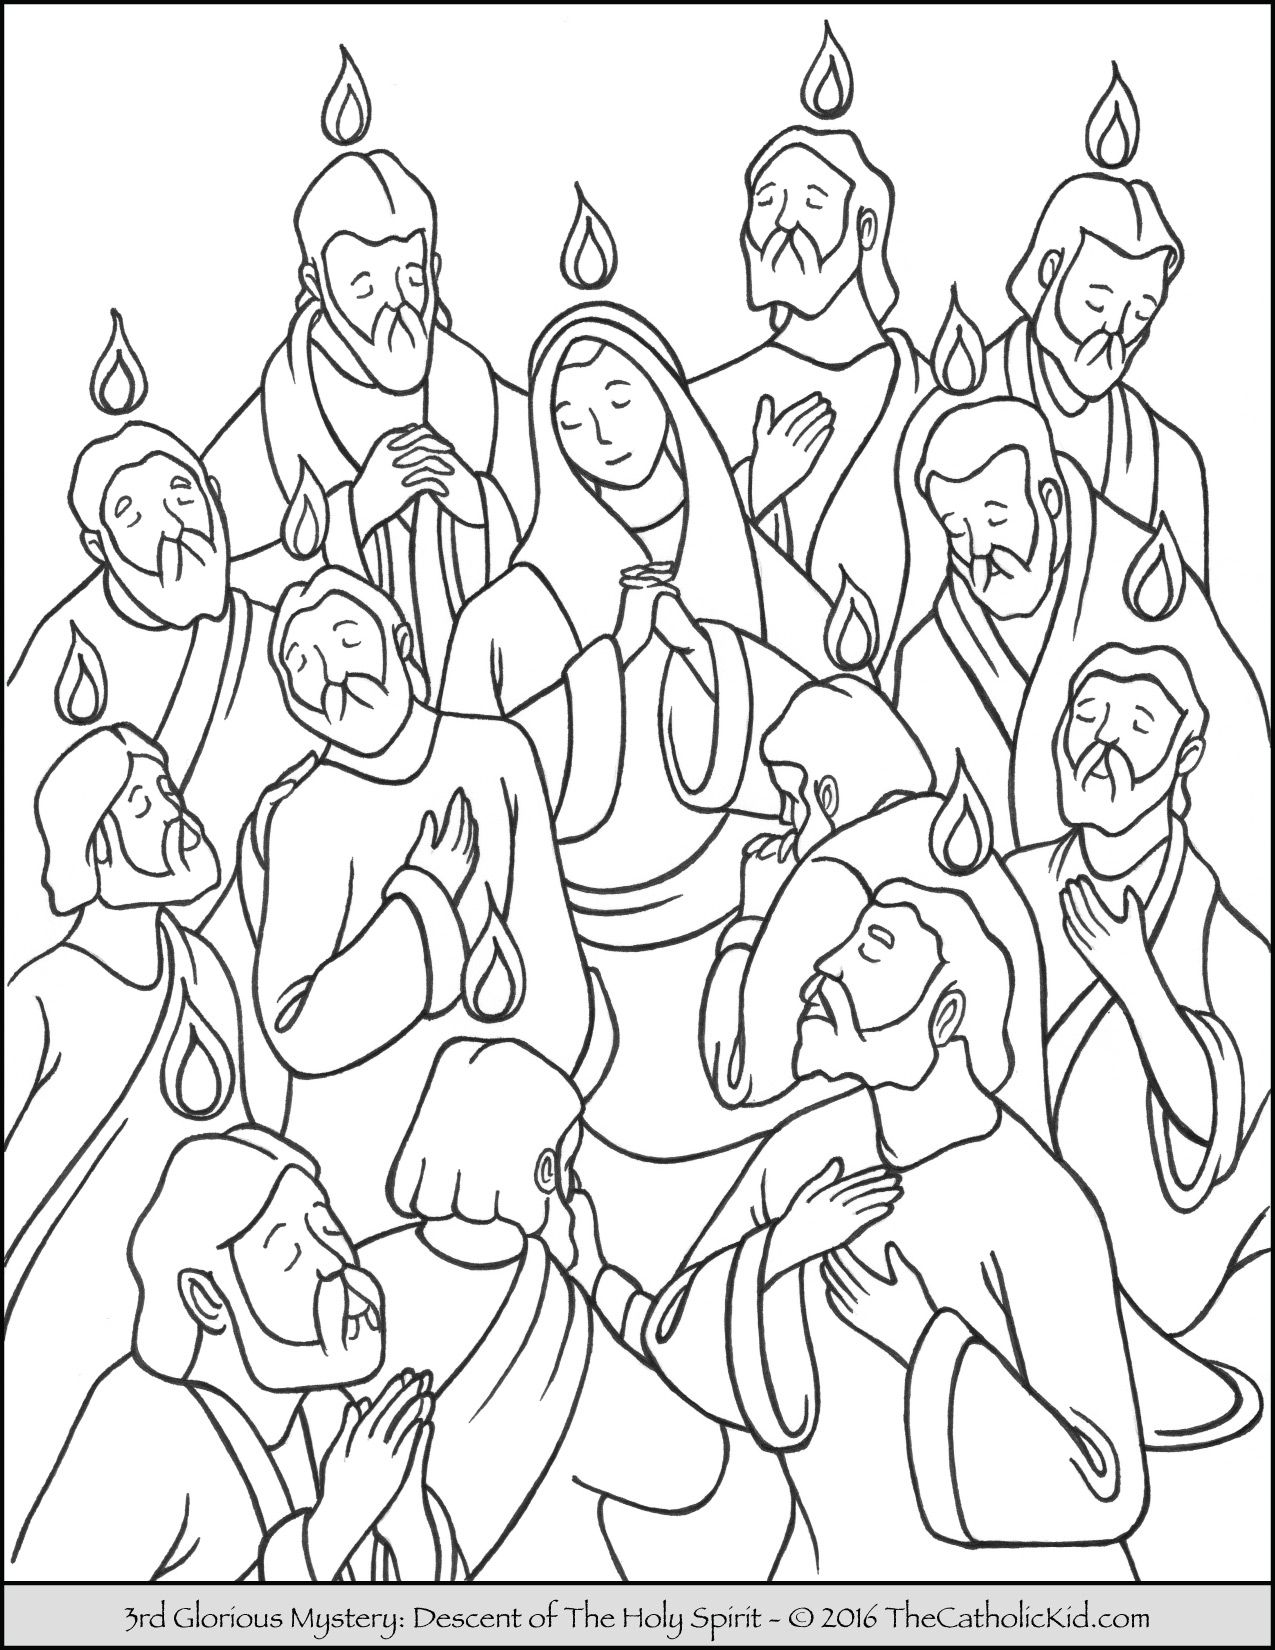 The 3rd Glorious Mystery Coloring Page – The Descent of the Holy ...